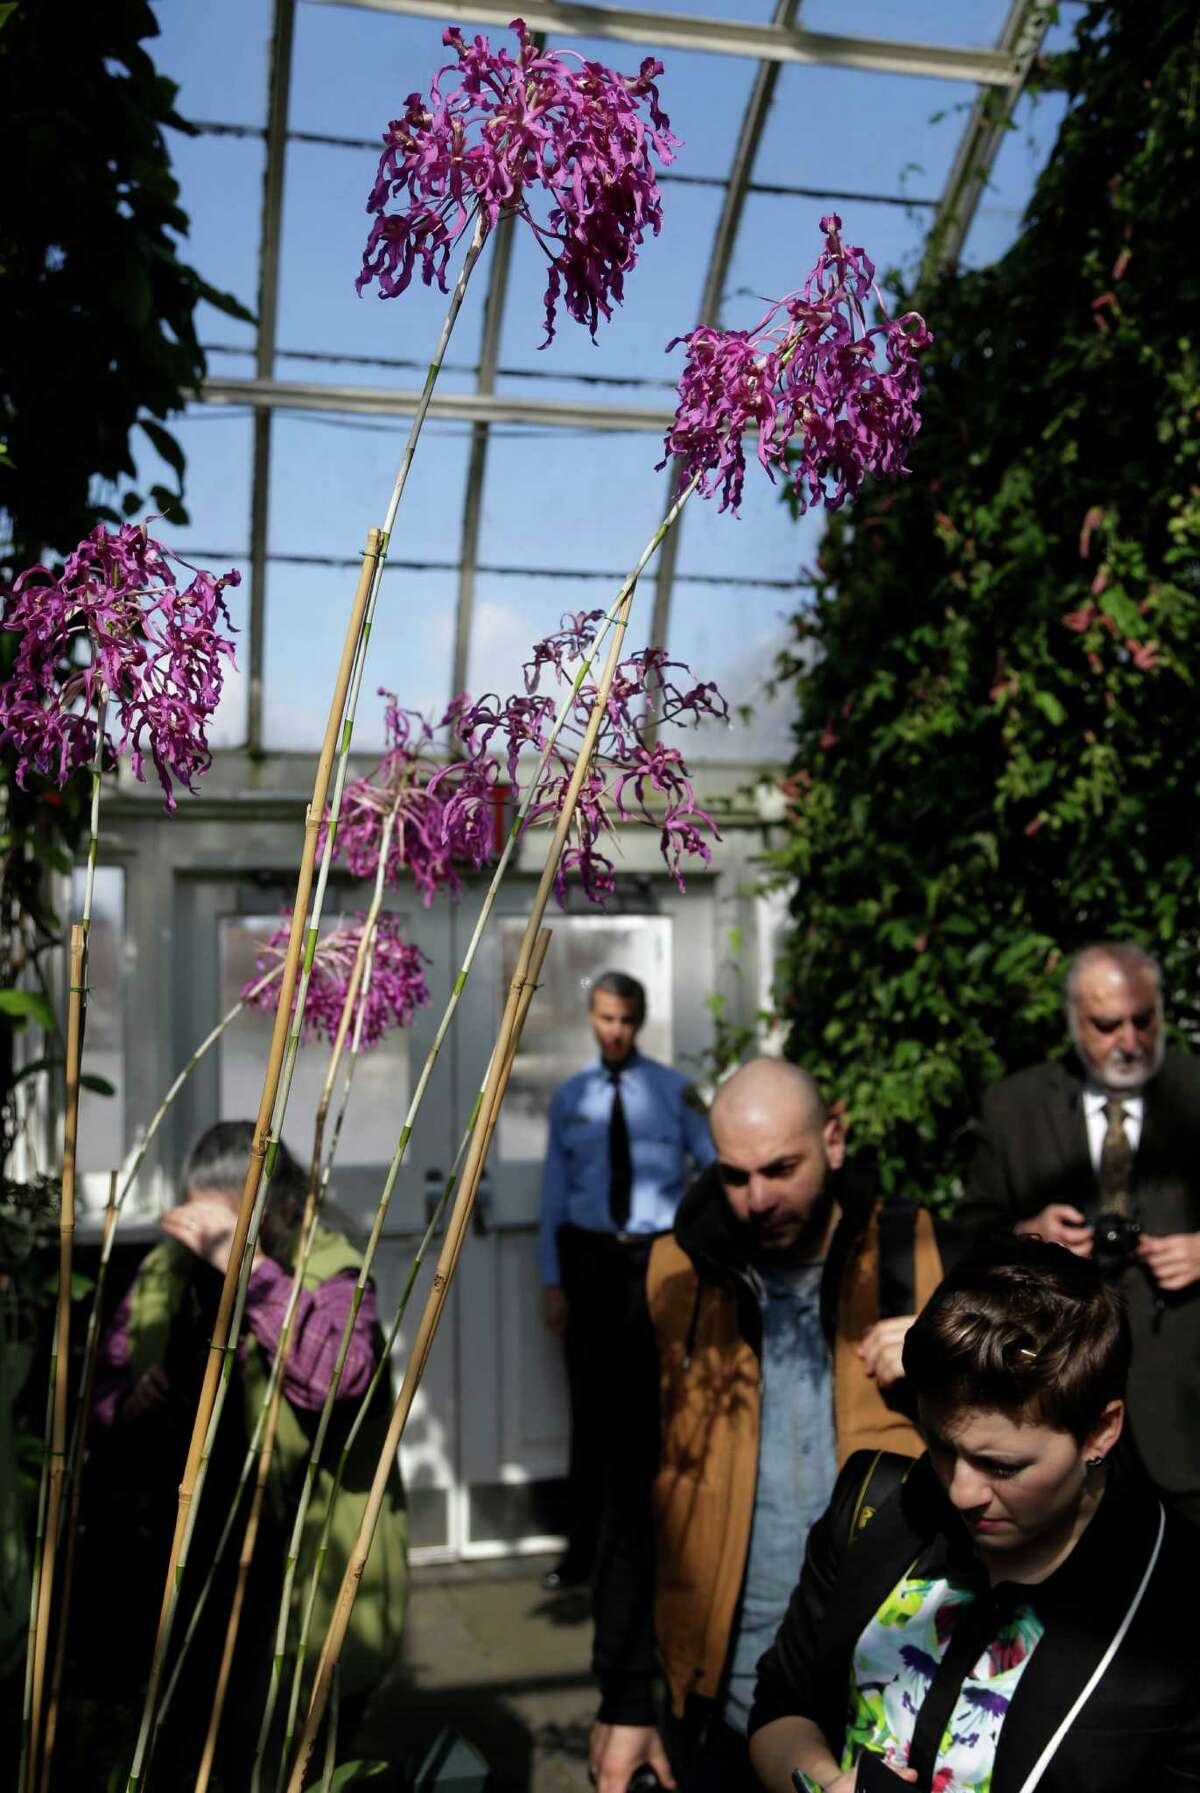 Visitors walk under Laelia superbiens during a press preview of the orchid show at the New York Botanical Gardens in New York, Thursday, Feb. 28, 2013. The botanical gardens will open their annual orchid show to the public on March 2, 2013